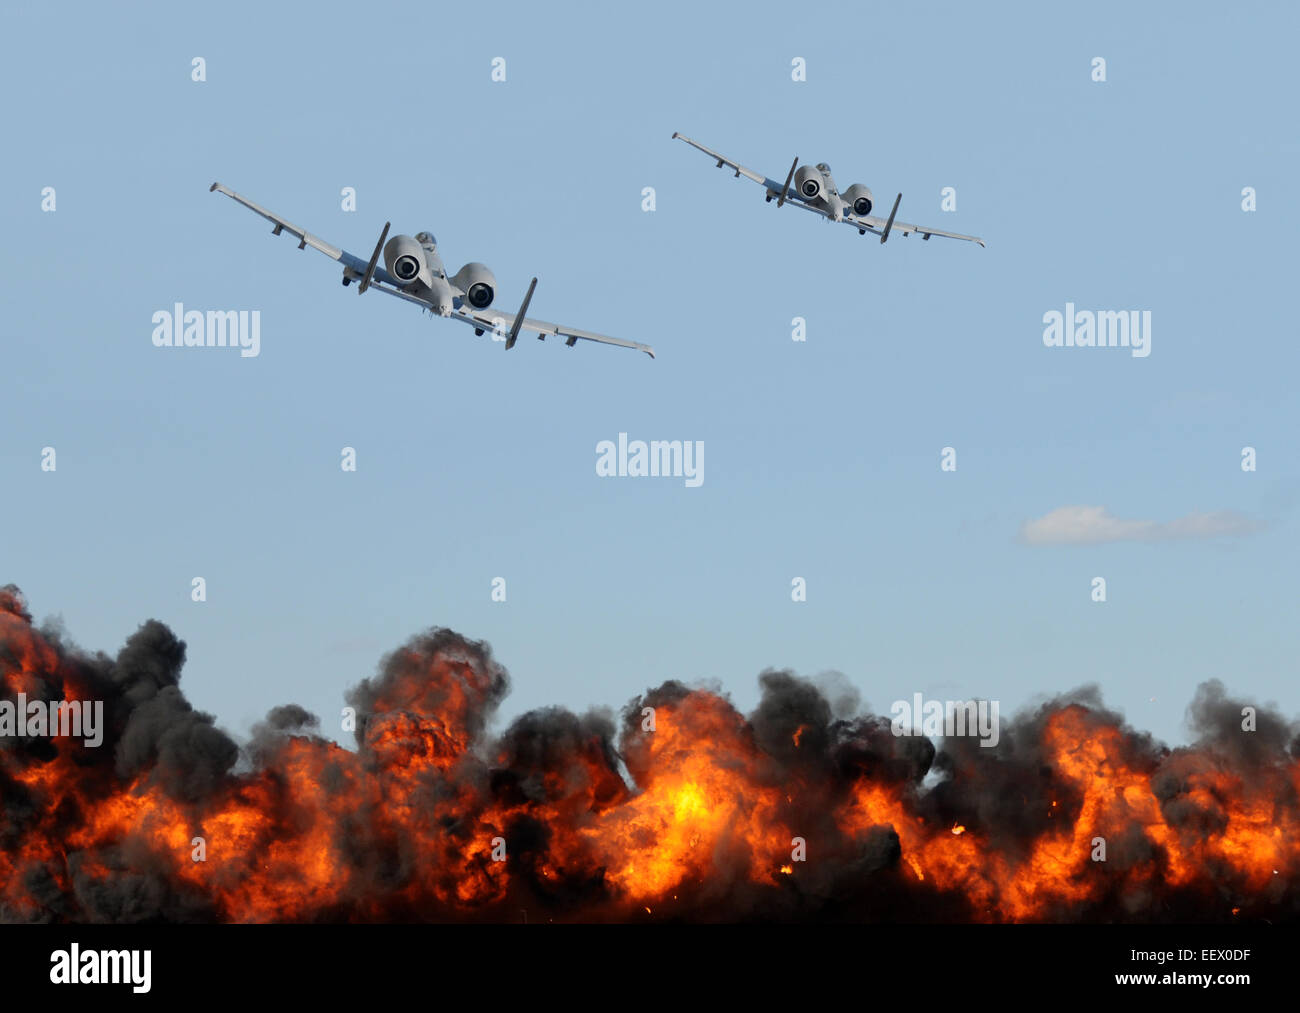 Two air force jets bombing targets - Stock Image